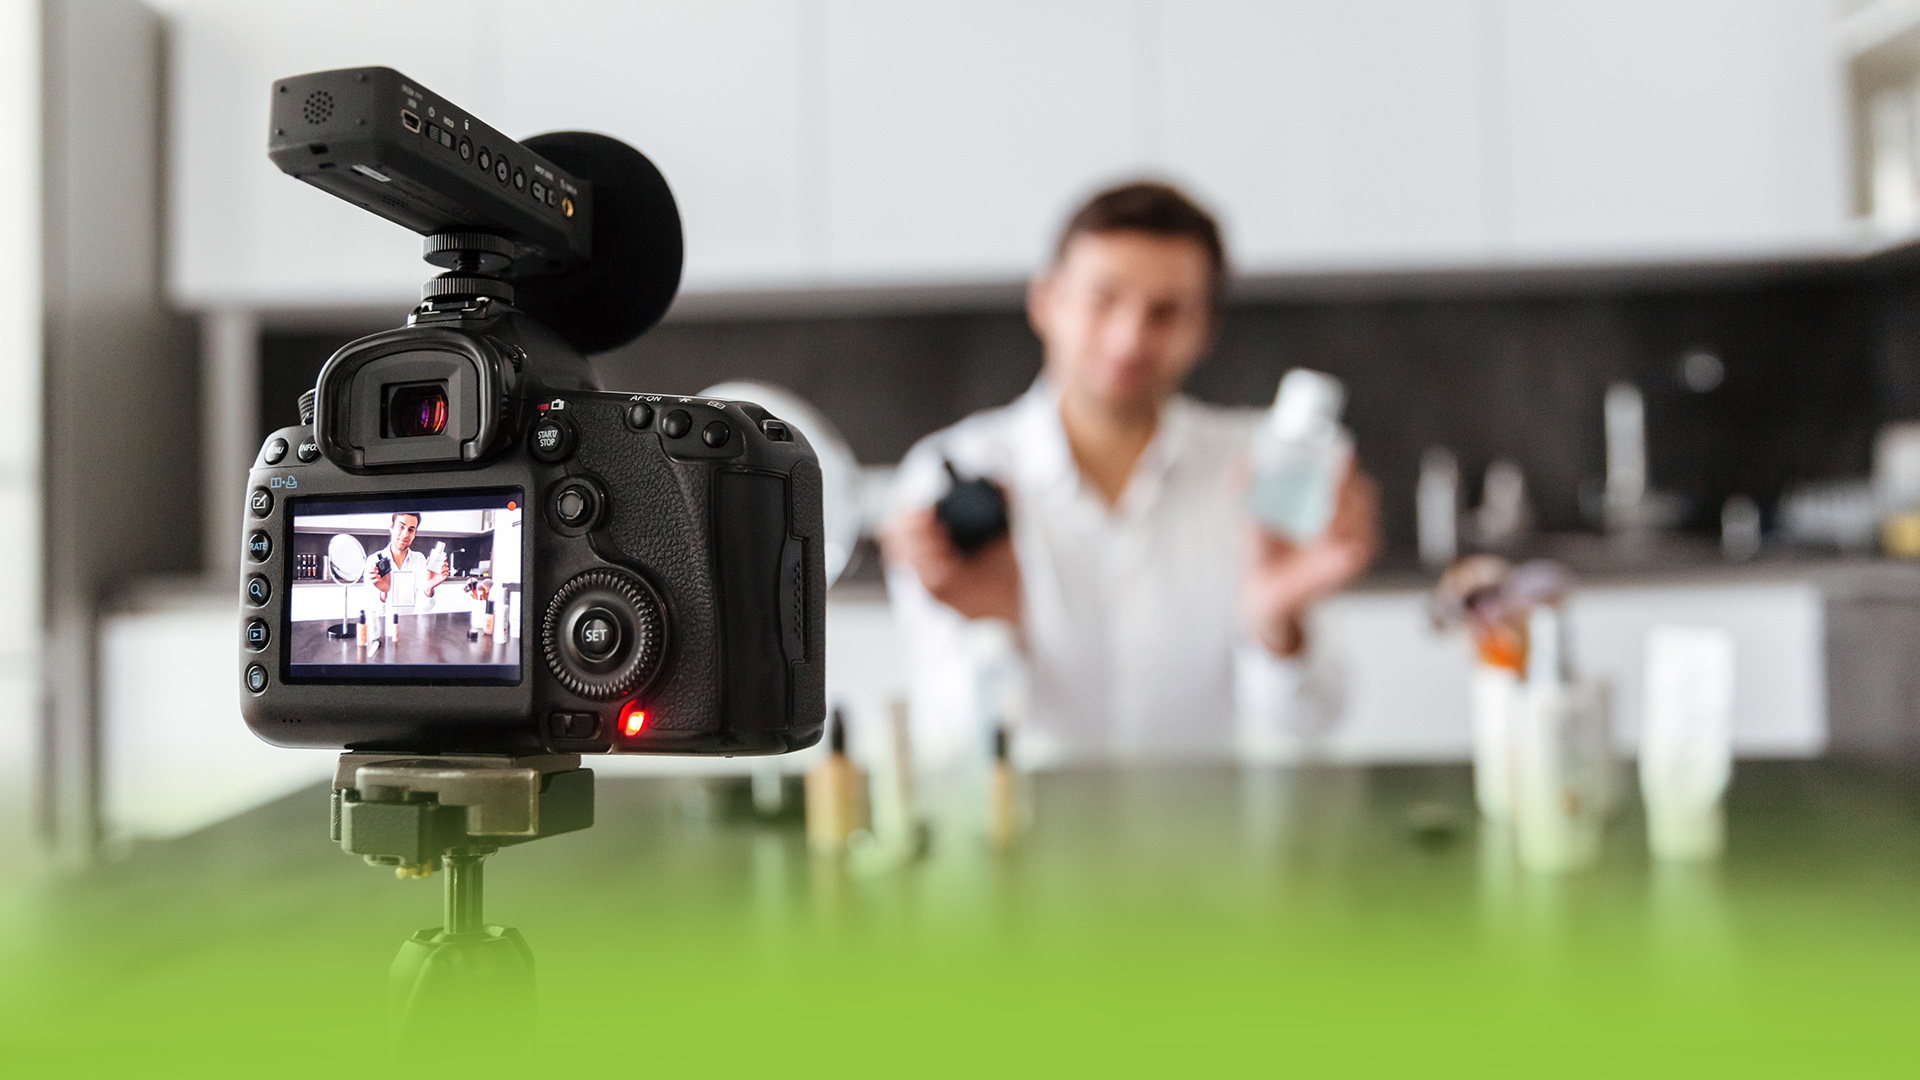 A man in a kitchen making a product video. His camera is recording and he's showing two skin care products.